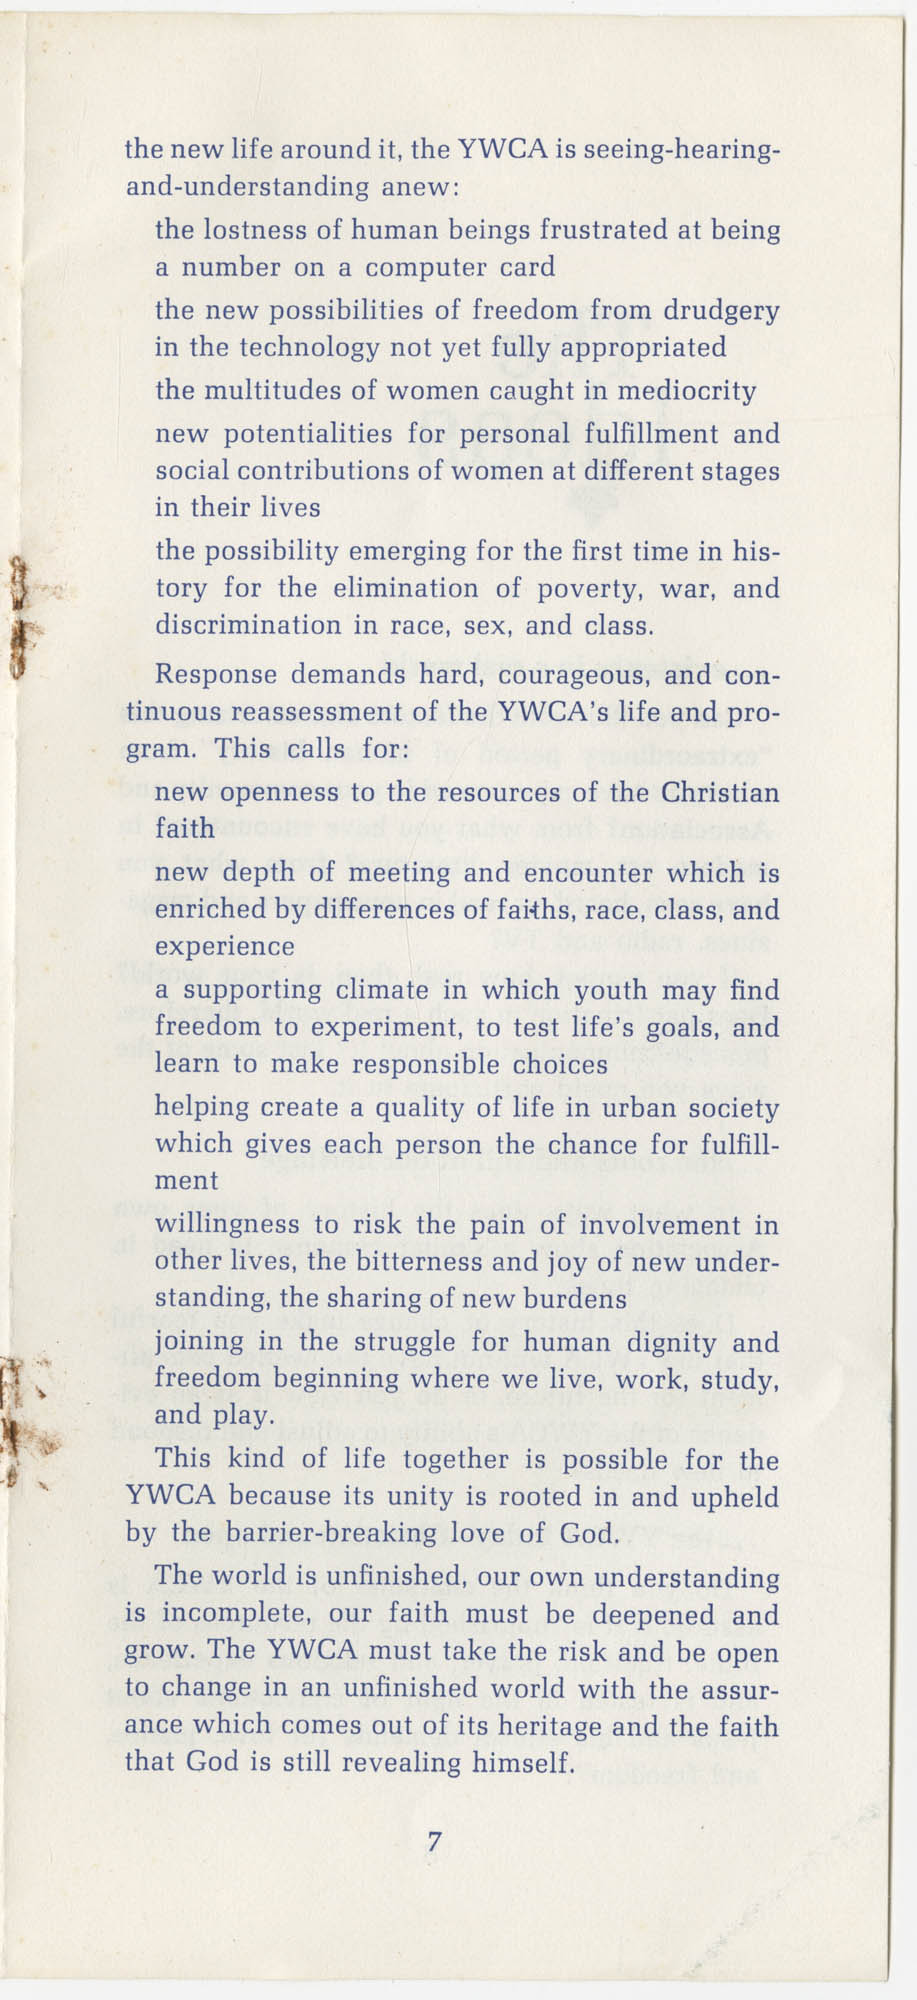 The Y.W.C.A.: A Christian Movement Open to the World, Page 7